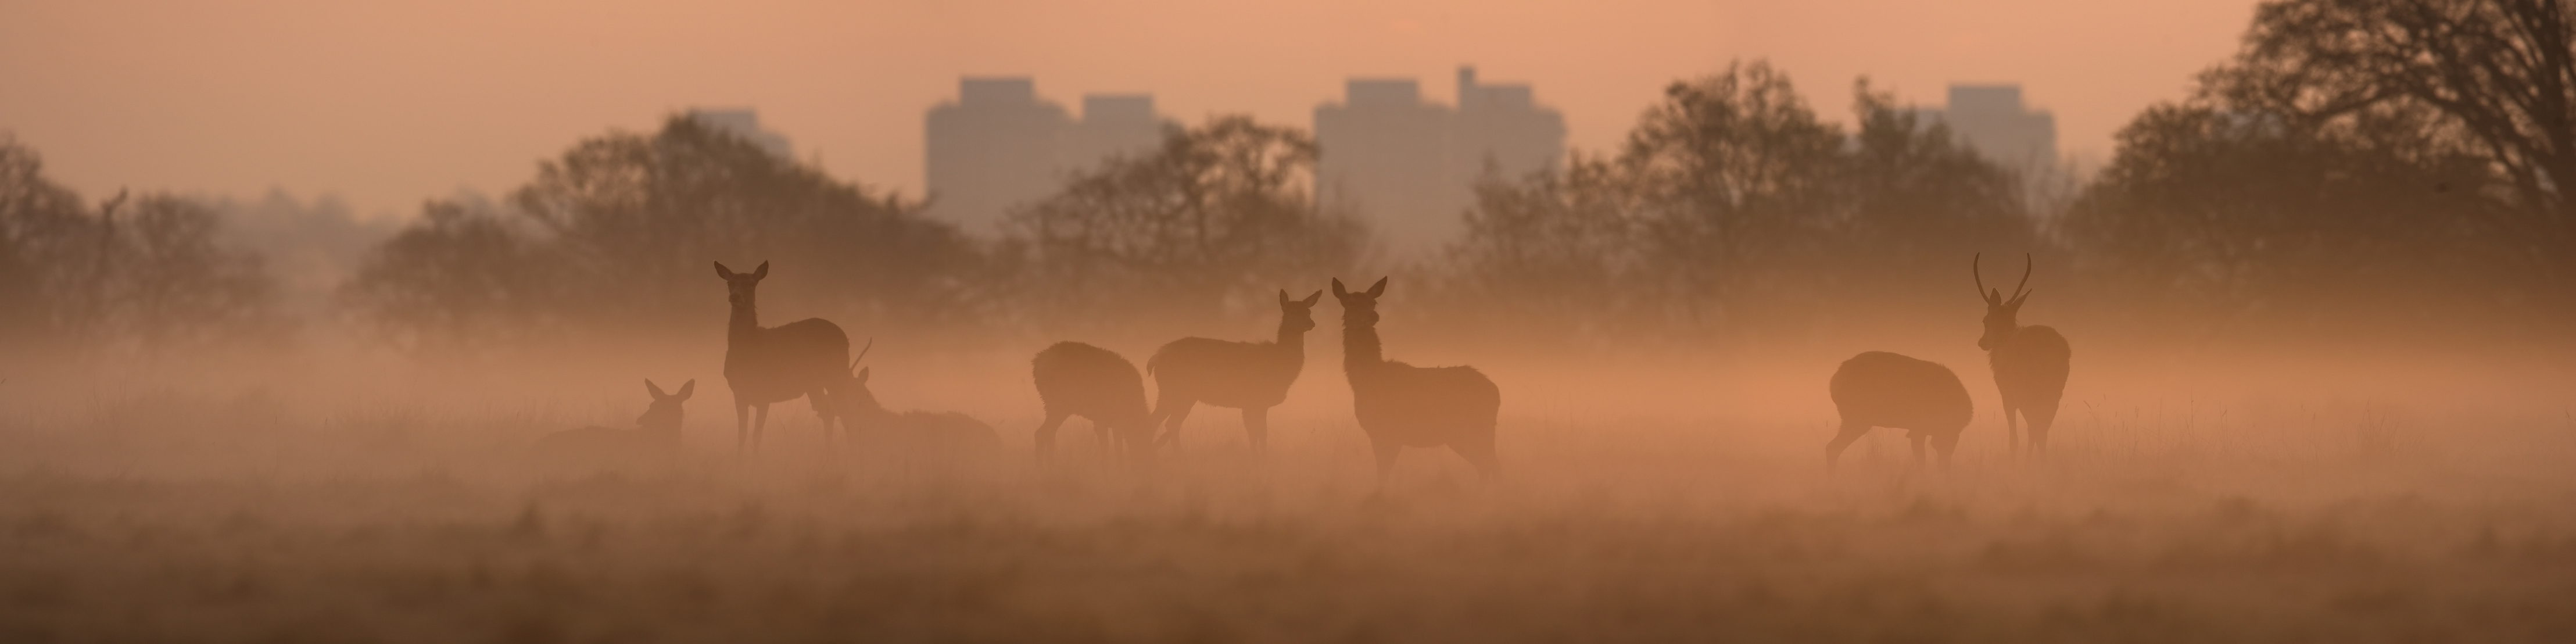 Deer and City - Photo © Graeme Purdy - iStock